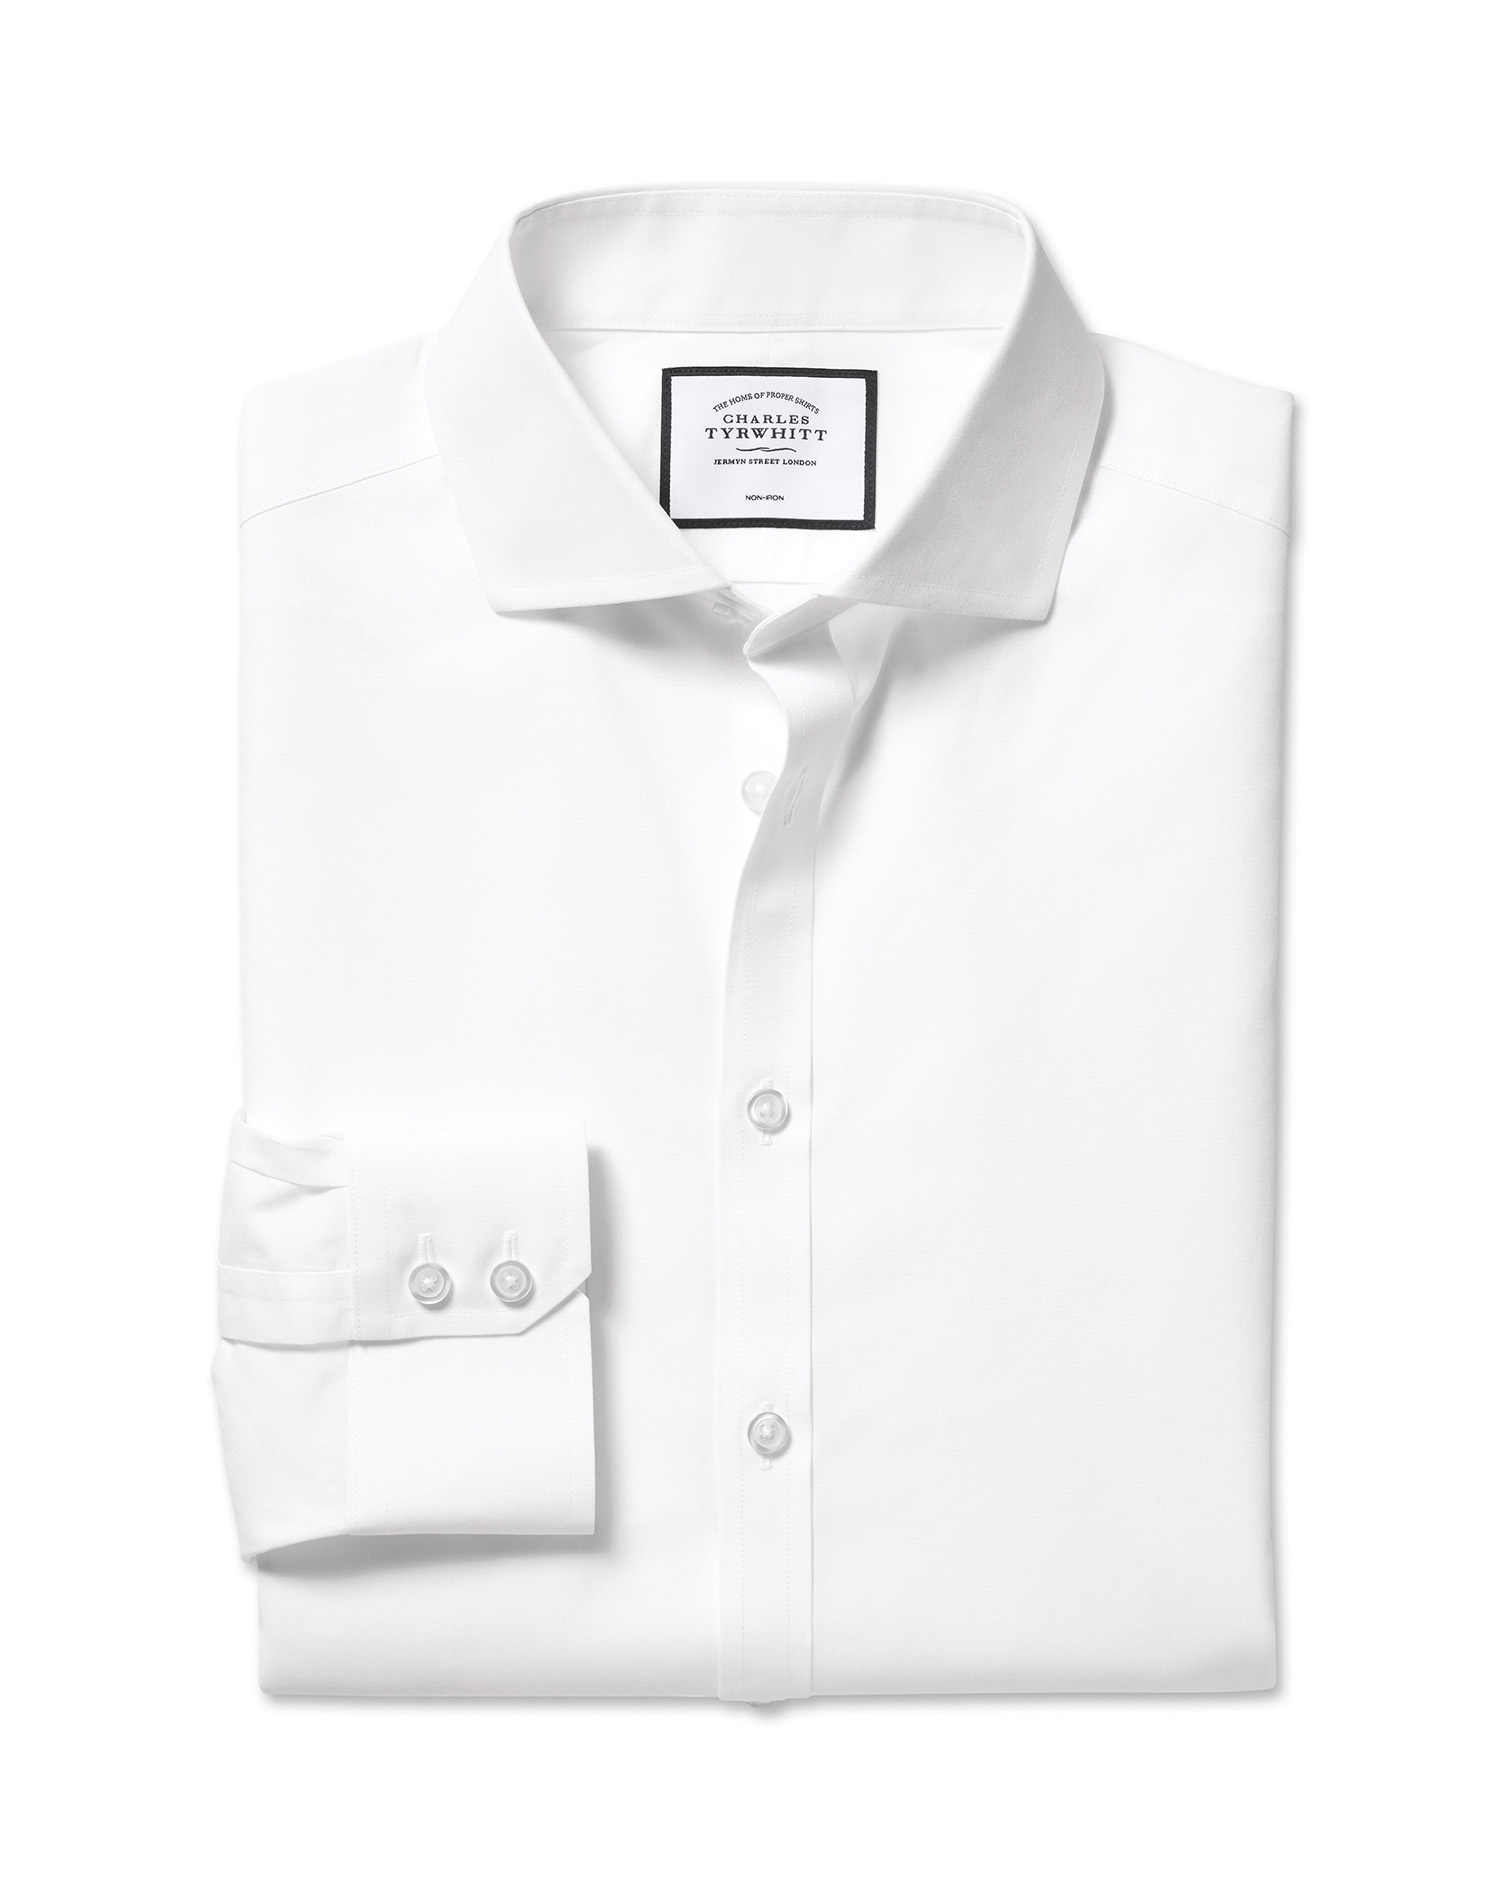 Classic Fit Cutaway Non-Iron Natural Cool White Cotton Formal Shirt Single Cuff Size 18/38 by Charle